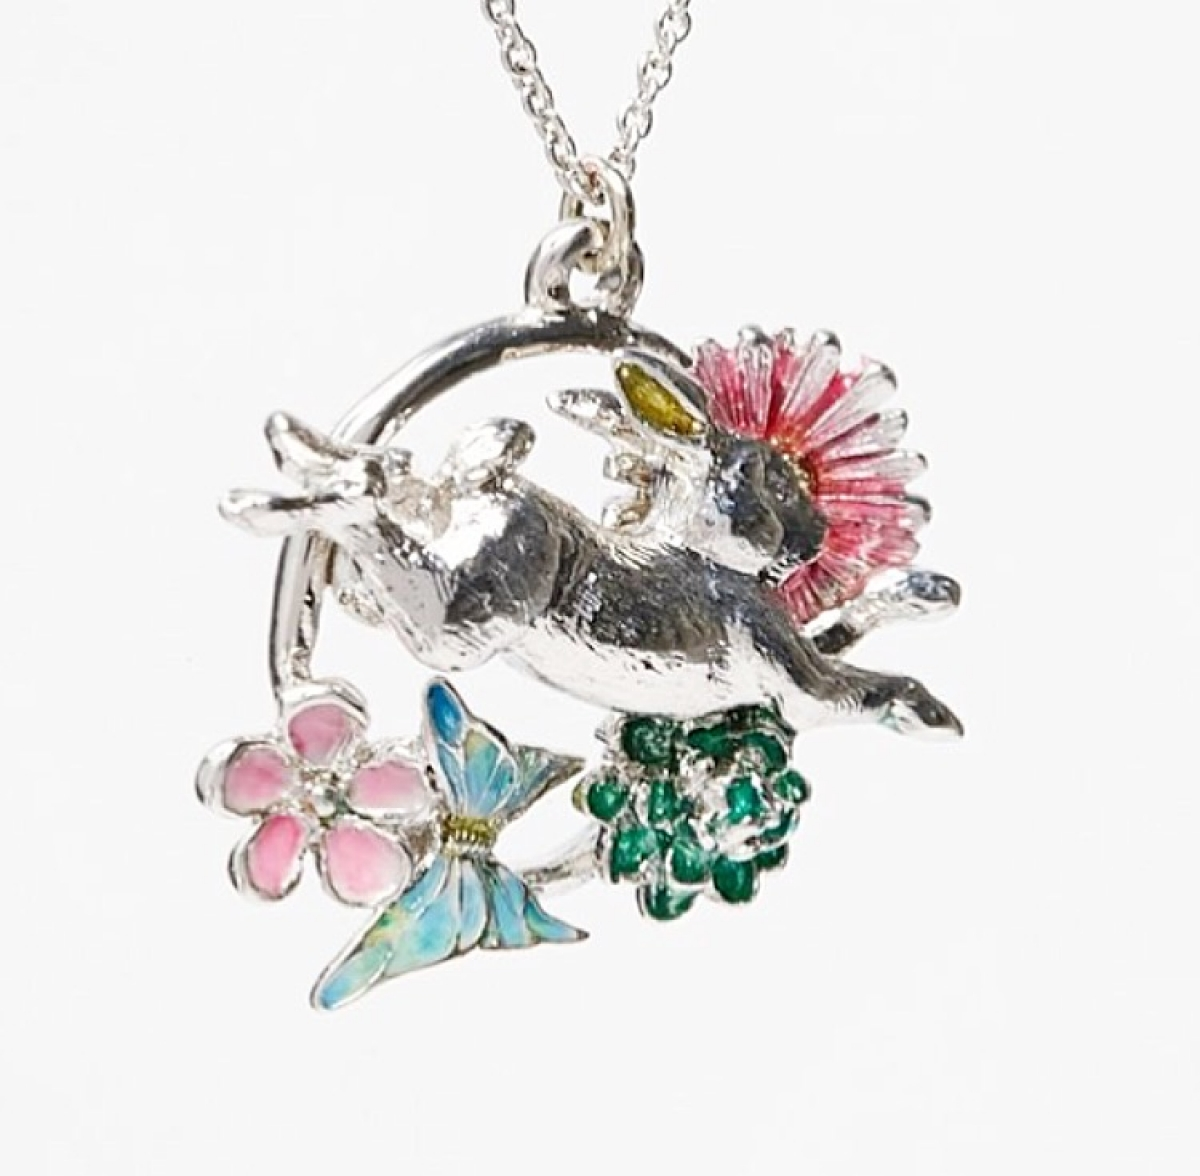 Flower Leaping Rabbit Necklace